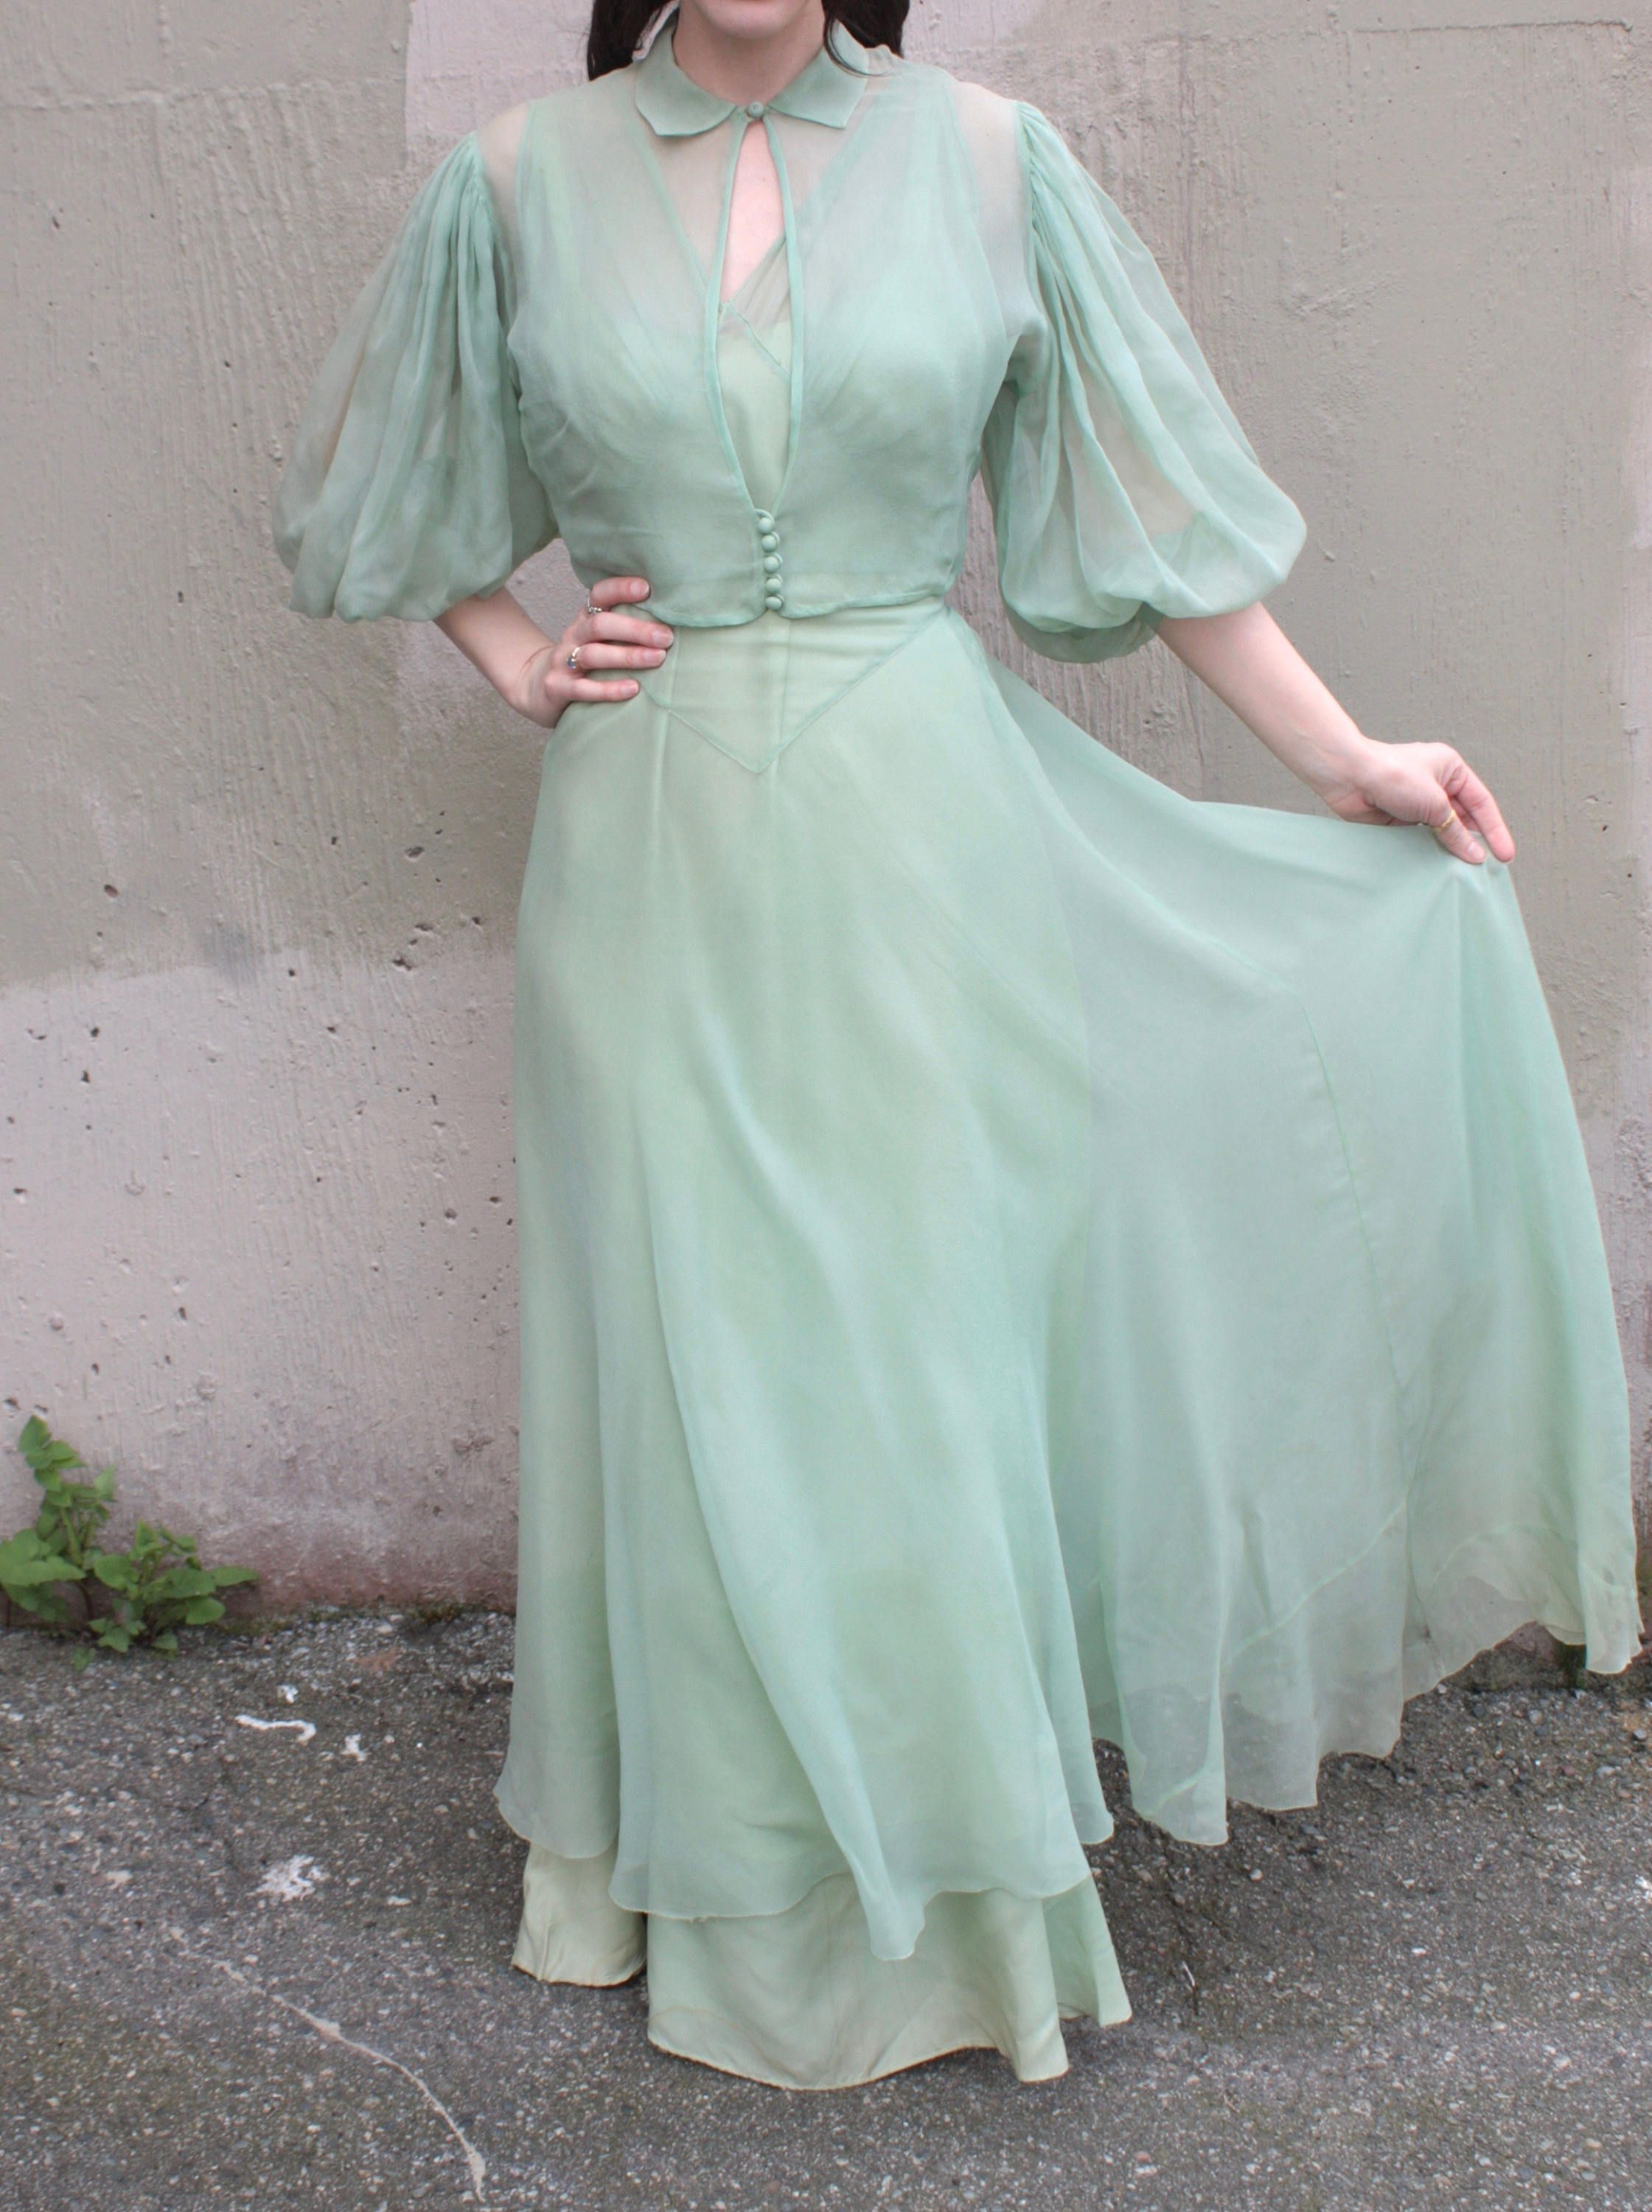 d0e42169a97 Vintage 1930 s Dress    30s Seafoam Green Bias Cut Cocktail Party Gown w   Sheer Silk Chiffon Overlay   Matching Balloon Sleeve Jacket Blouse by ...